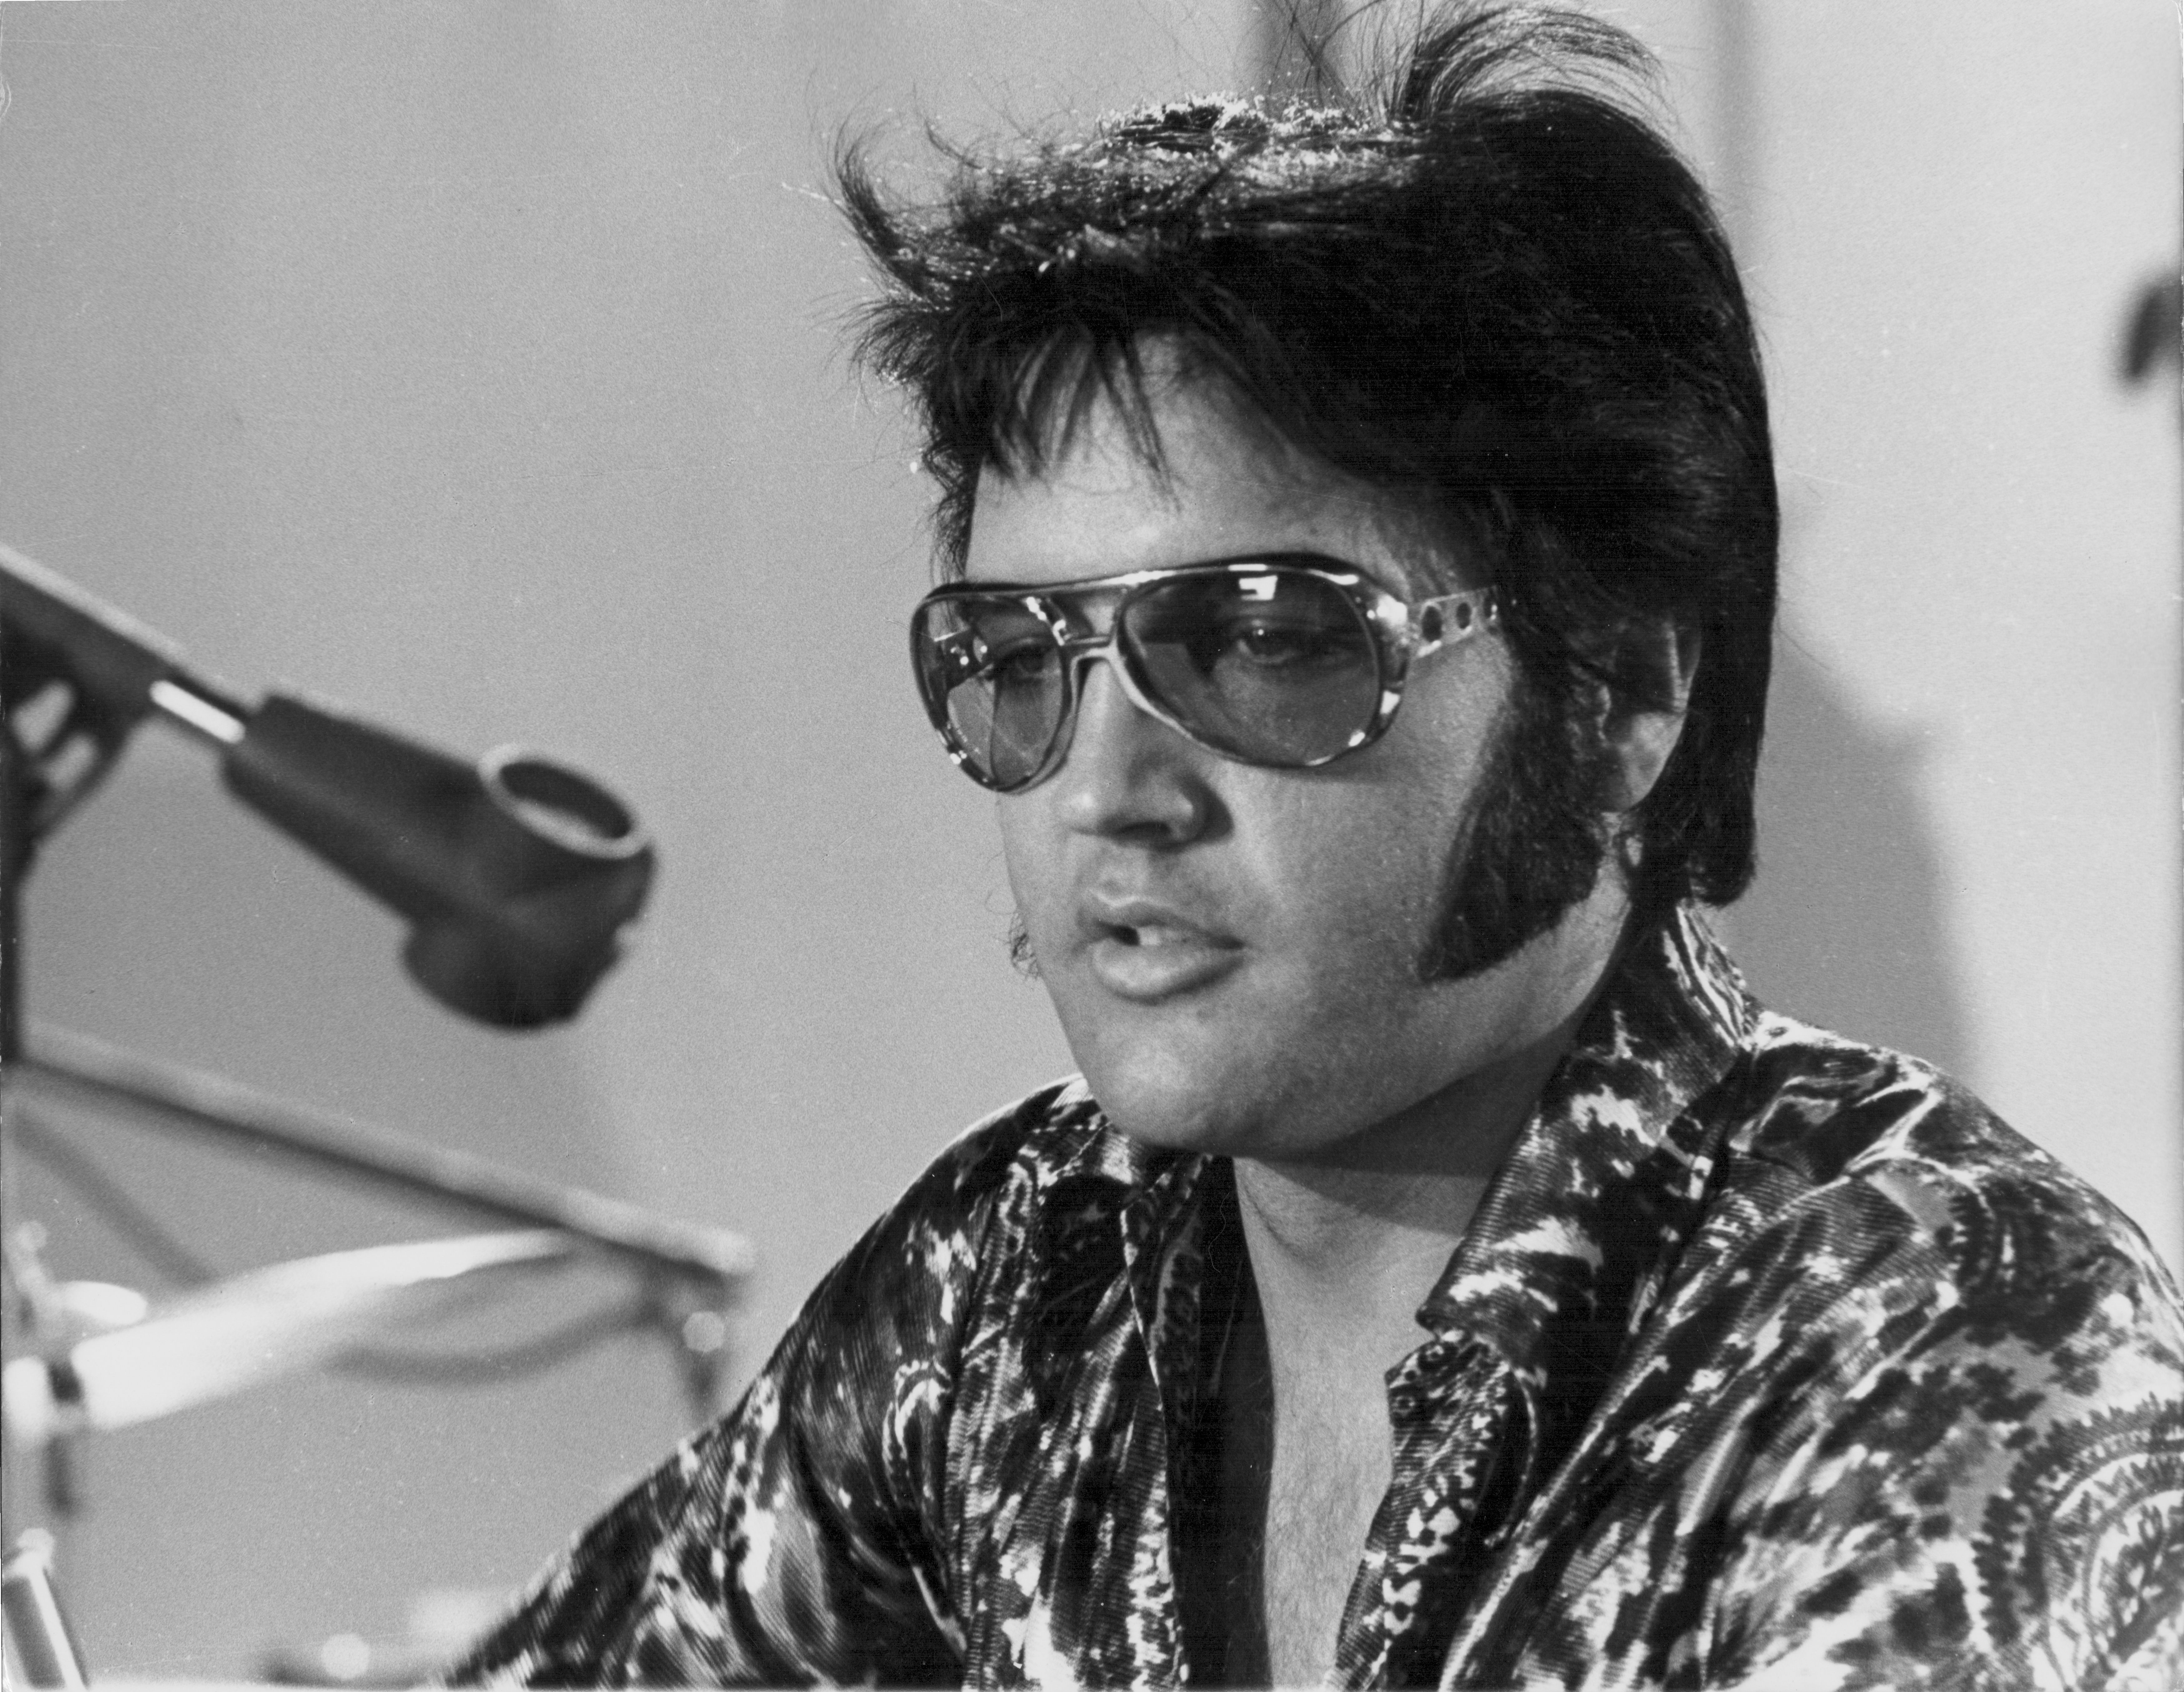 Elvis Presley in the documentary film 'Elvis; That's The Way It Is' in 1970   Source: Getty Images